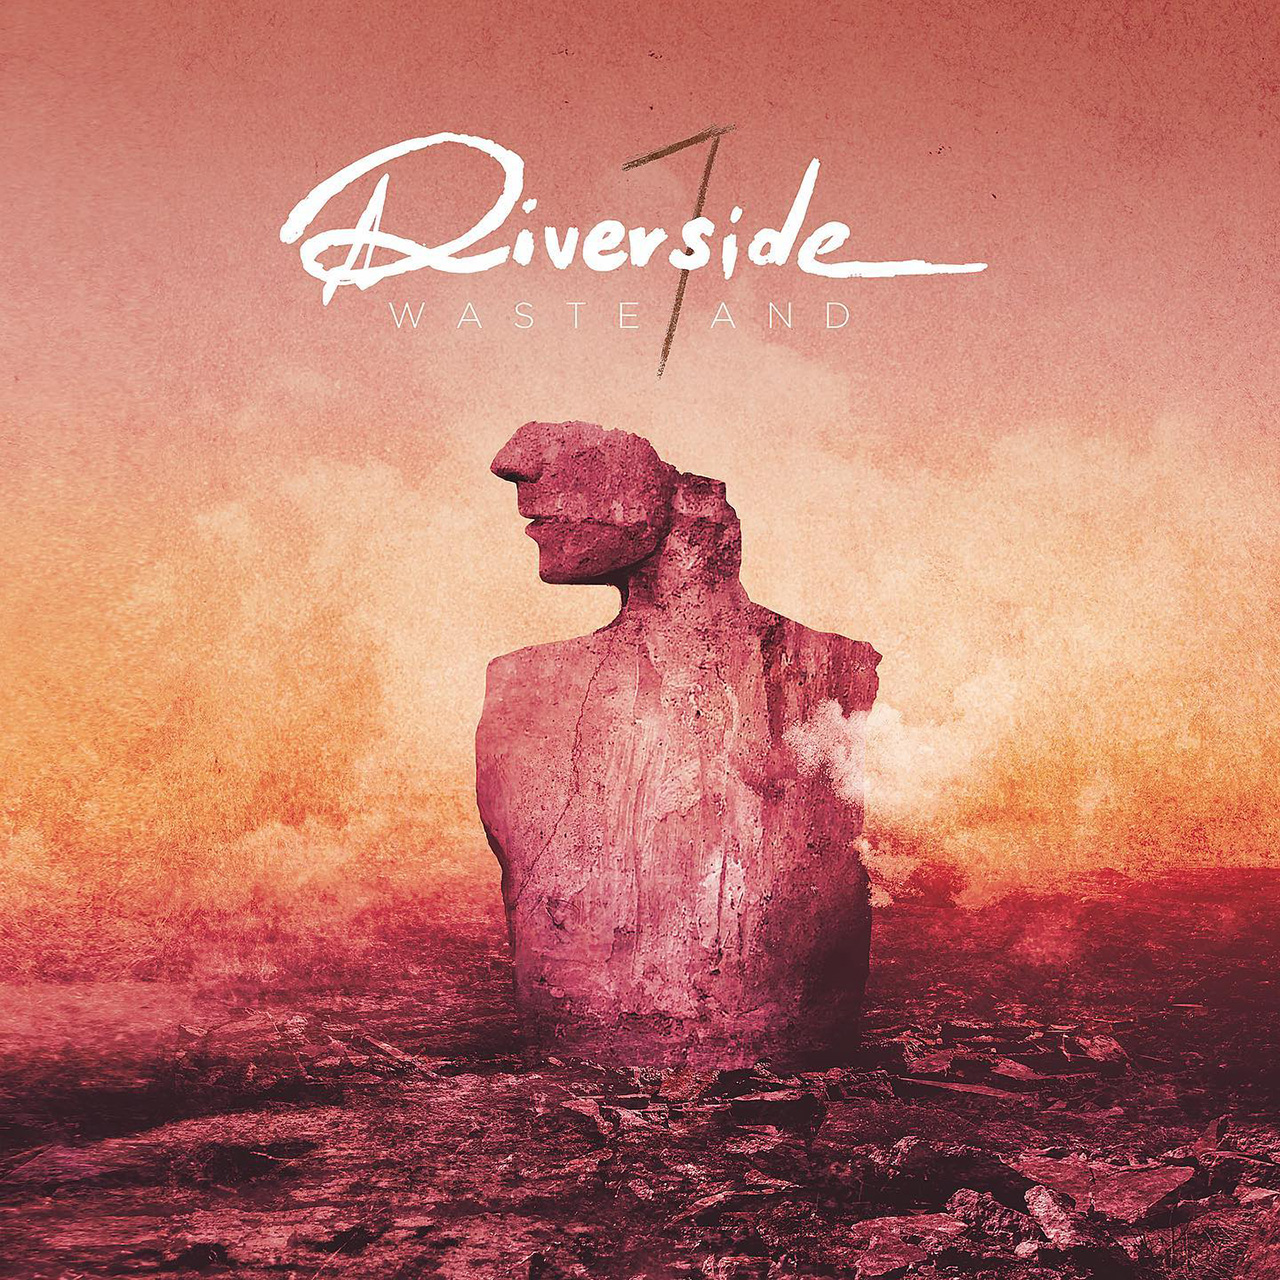 Riverside reveal Wasteland special edition | Louder